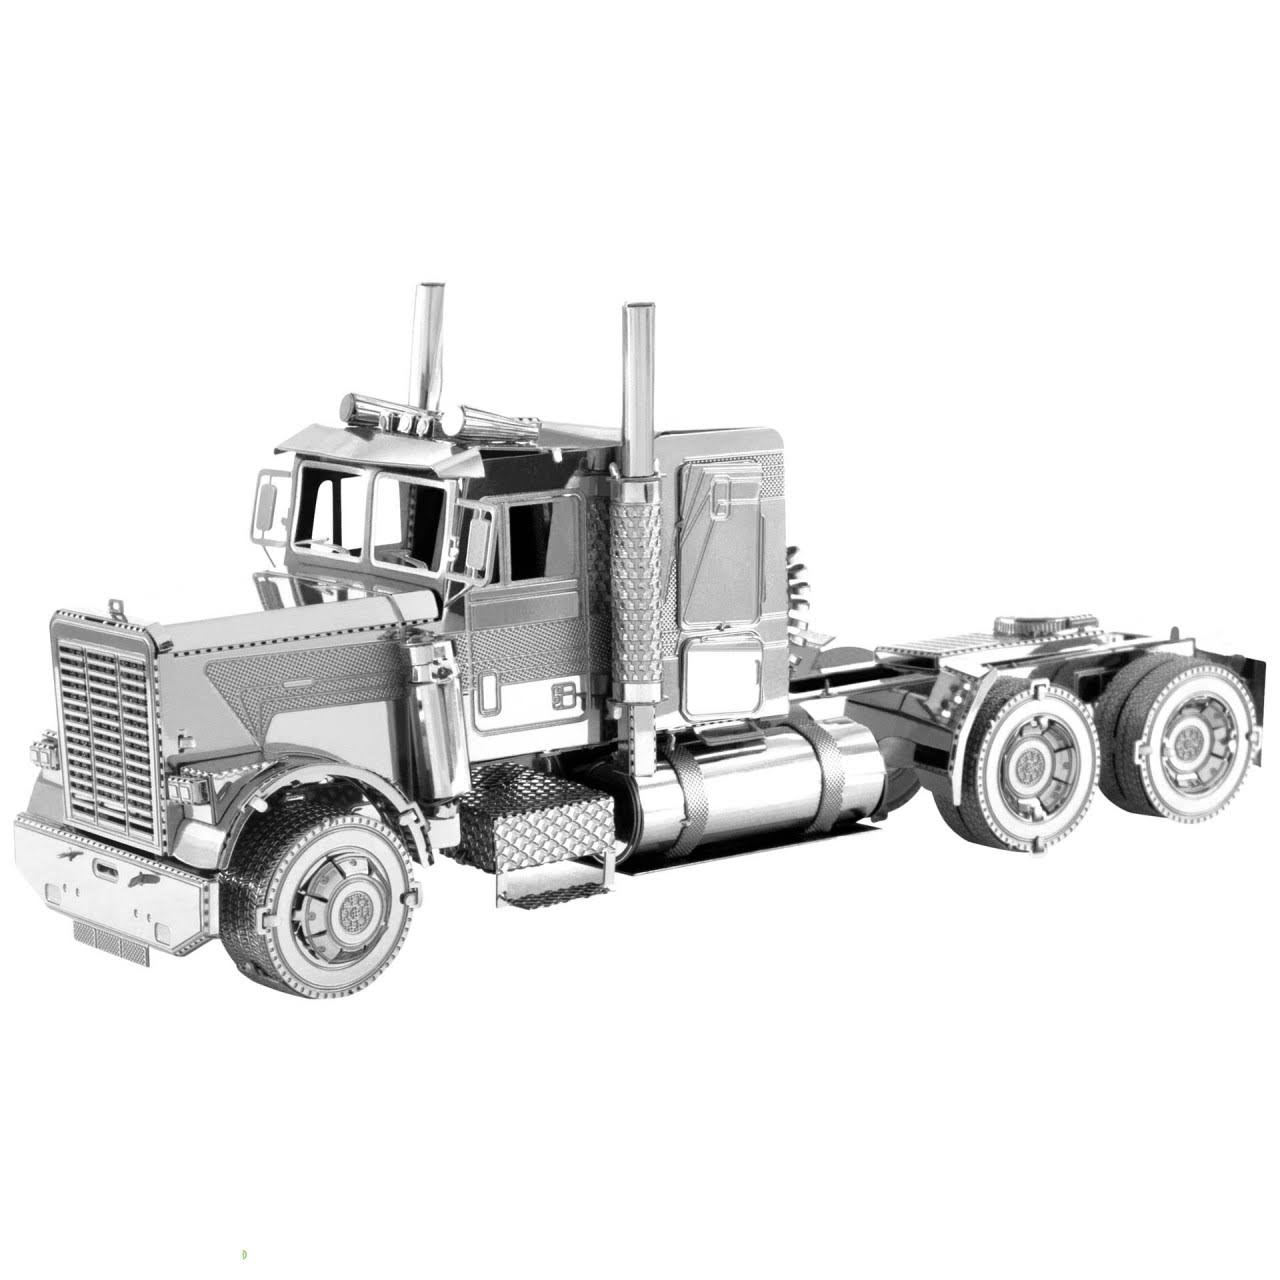 Fascinations Metal Earth MMS144 Freightliner Long Nose Truck 3D Metal Model Kit - Metallic